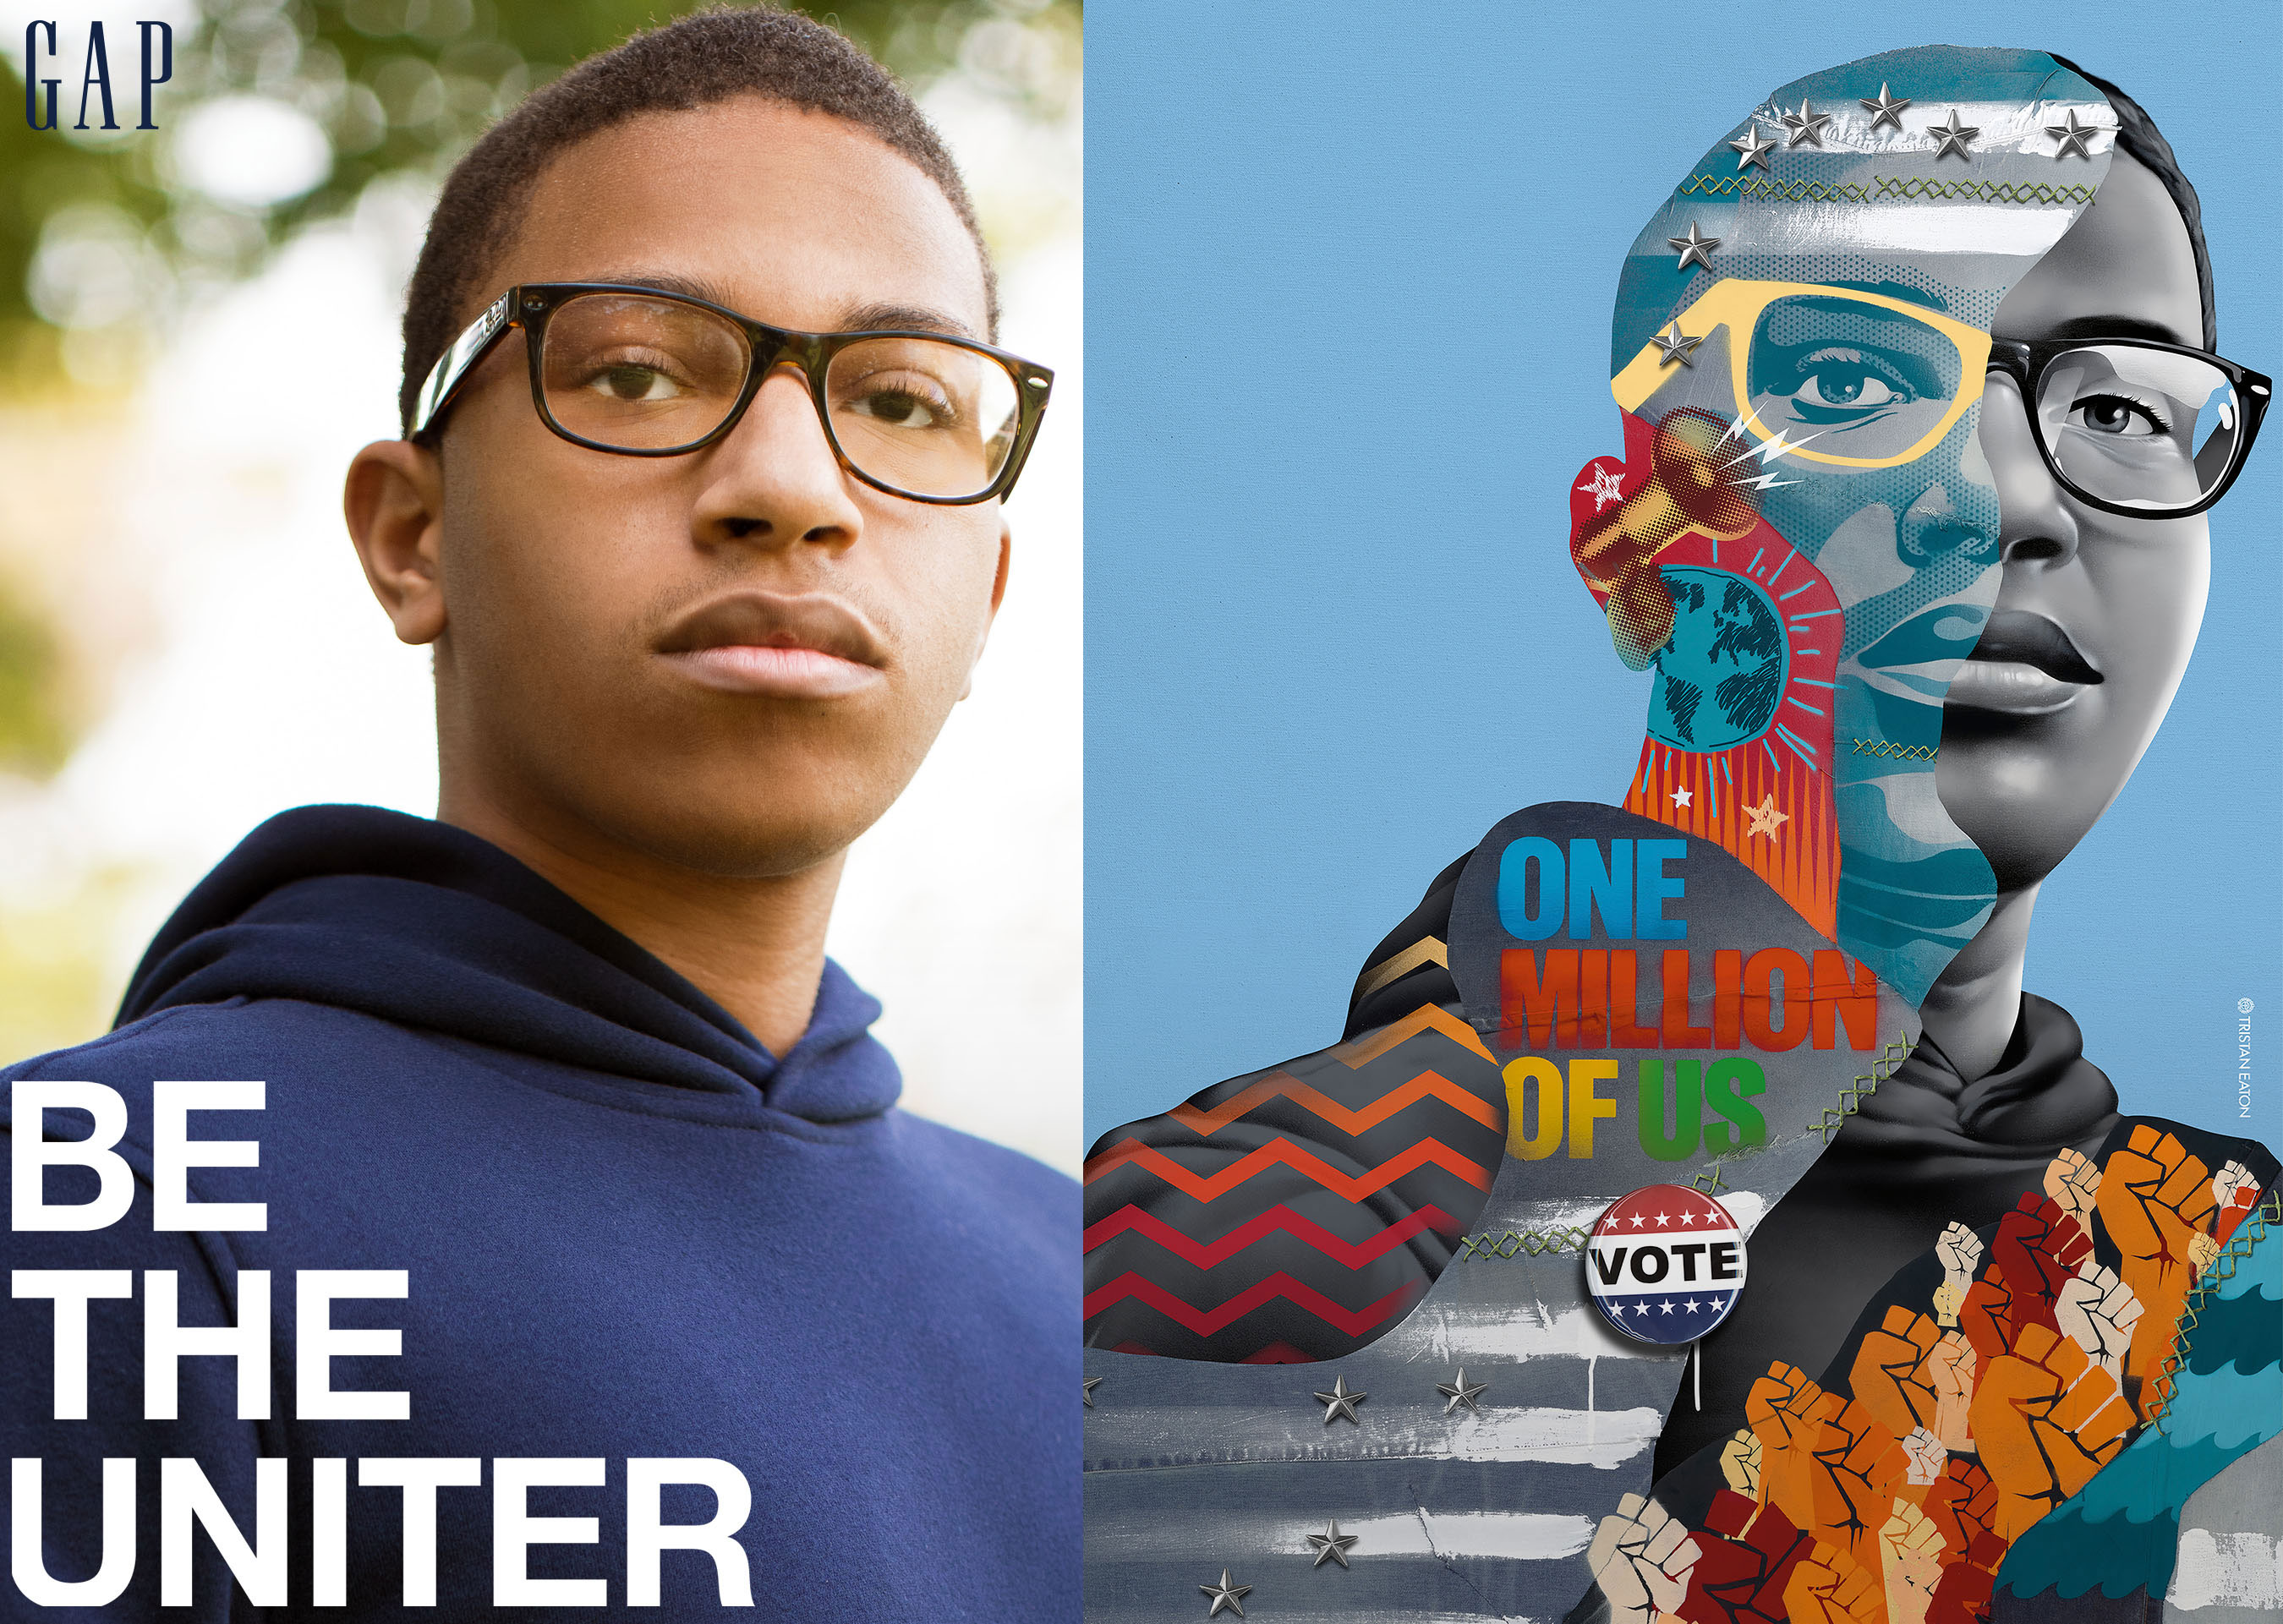 Tristan Eaton Paints Portraits of Young Activists for Gap's 'BE THE FUTURE' Campaign